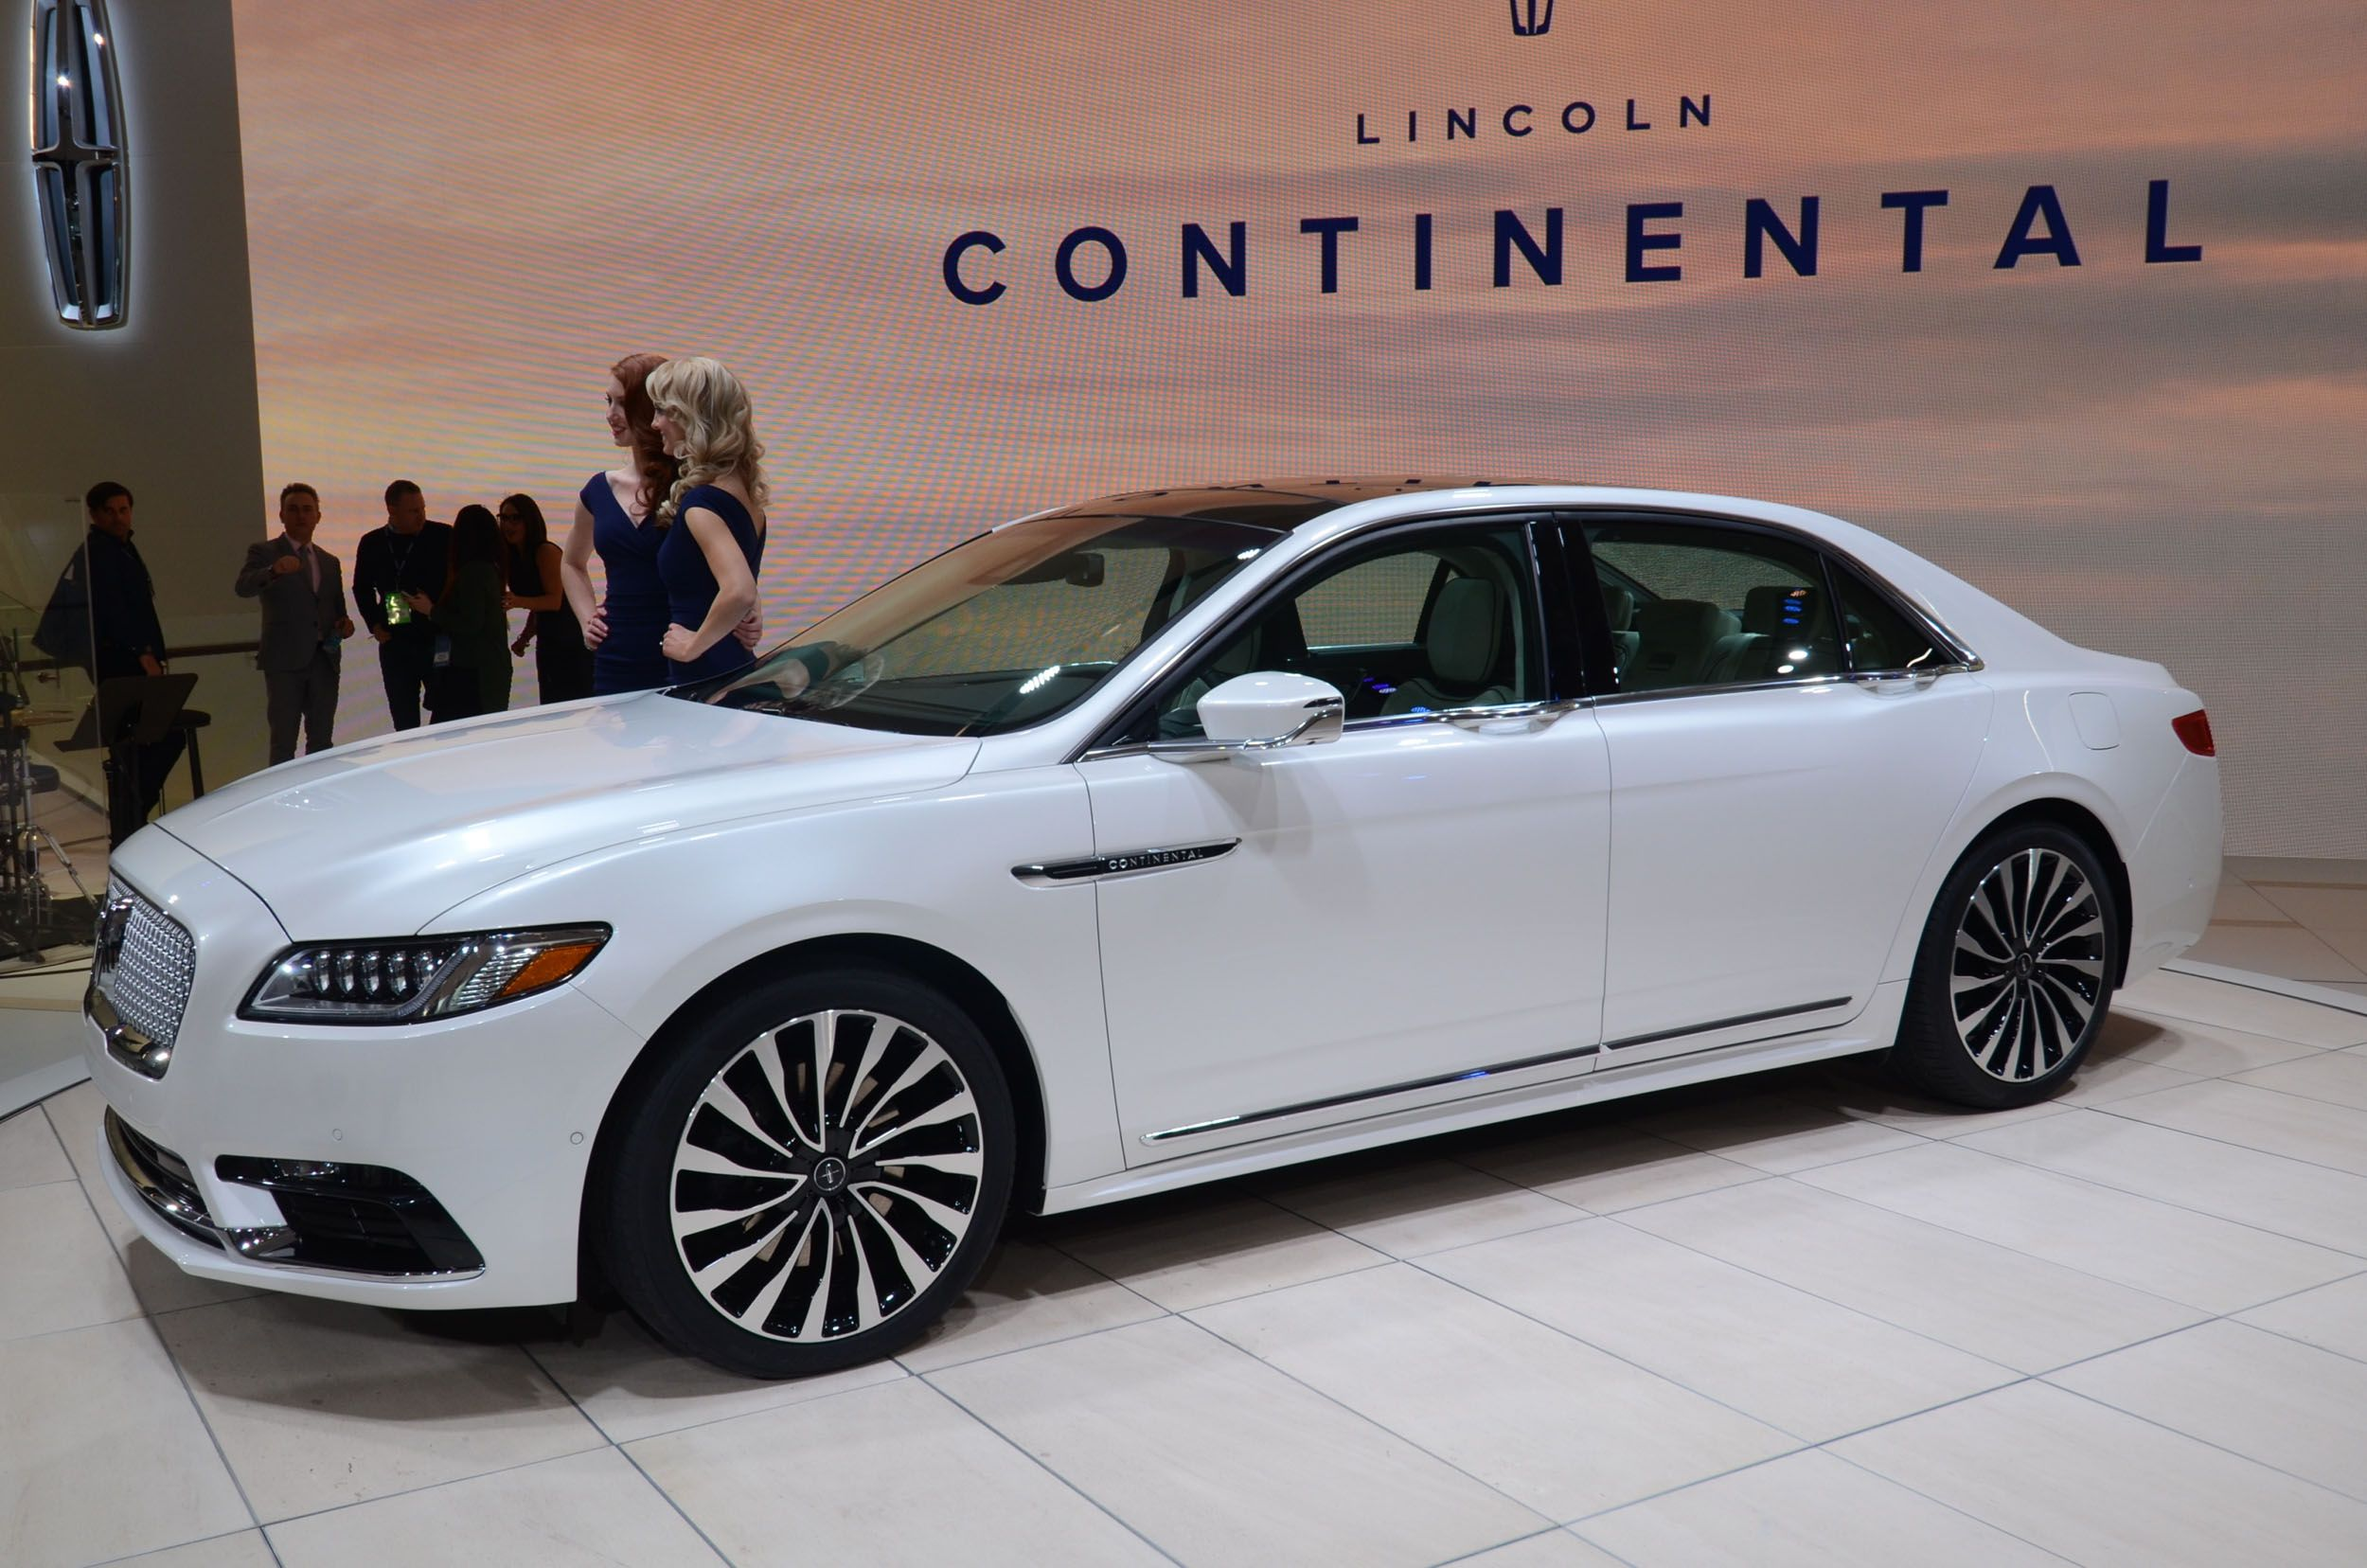 2017 Lincoln Continental Lincoln Pinterest Lincoln Continental